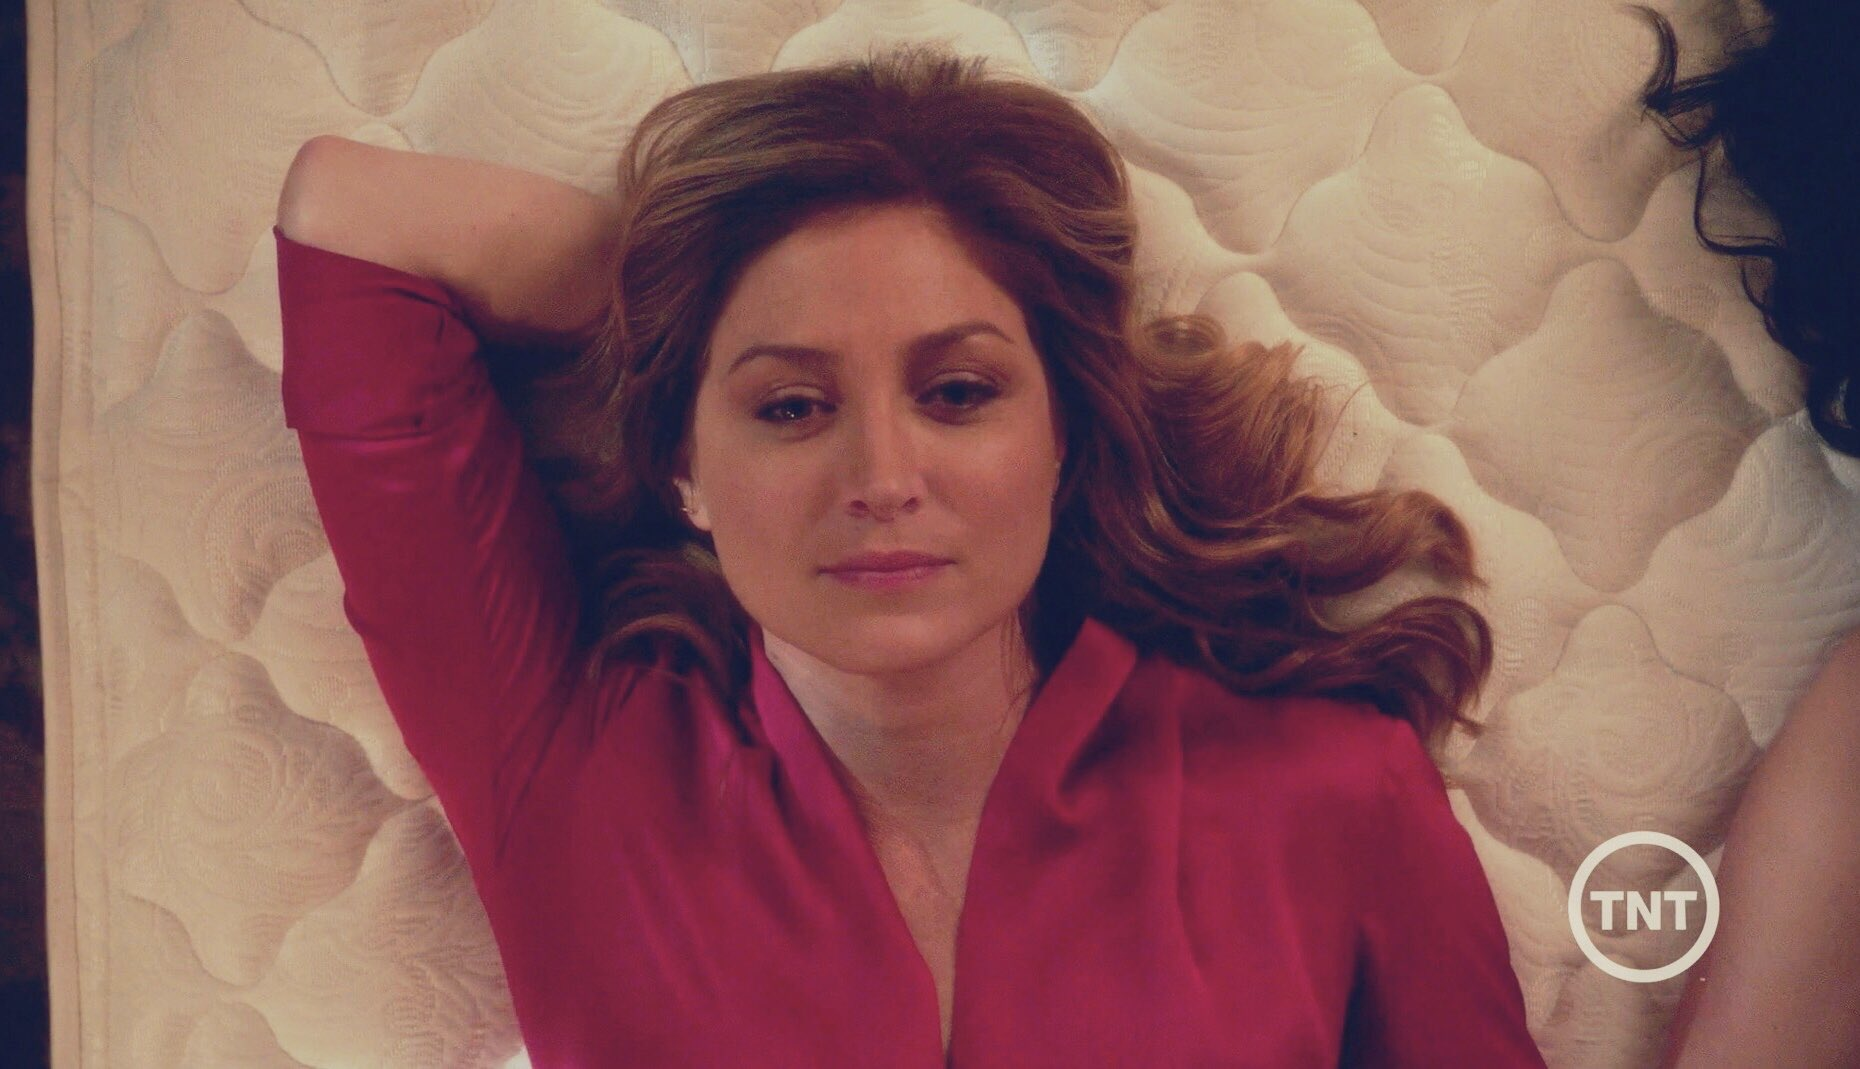 #MauraMonday  Who else had trouble getting out of bed this morning? ����‍♀️ https://t.co/IrtSIjZeGN